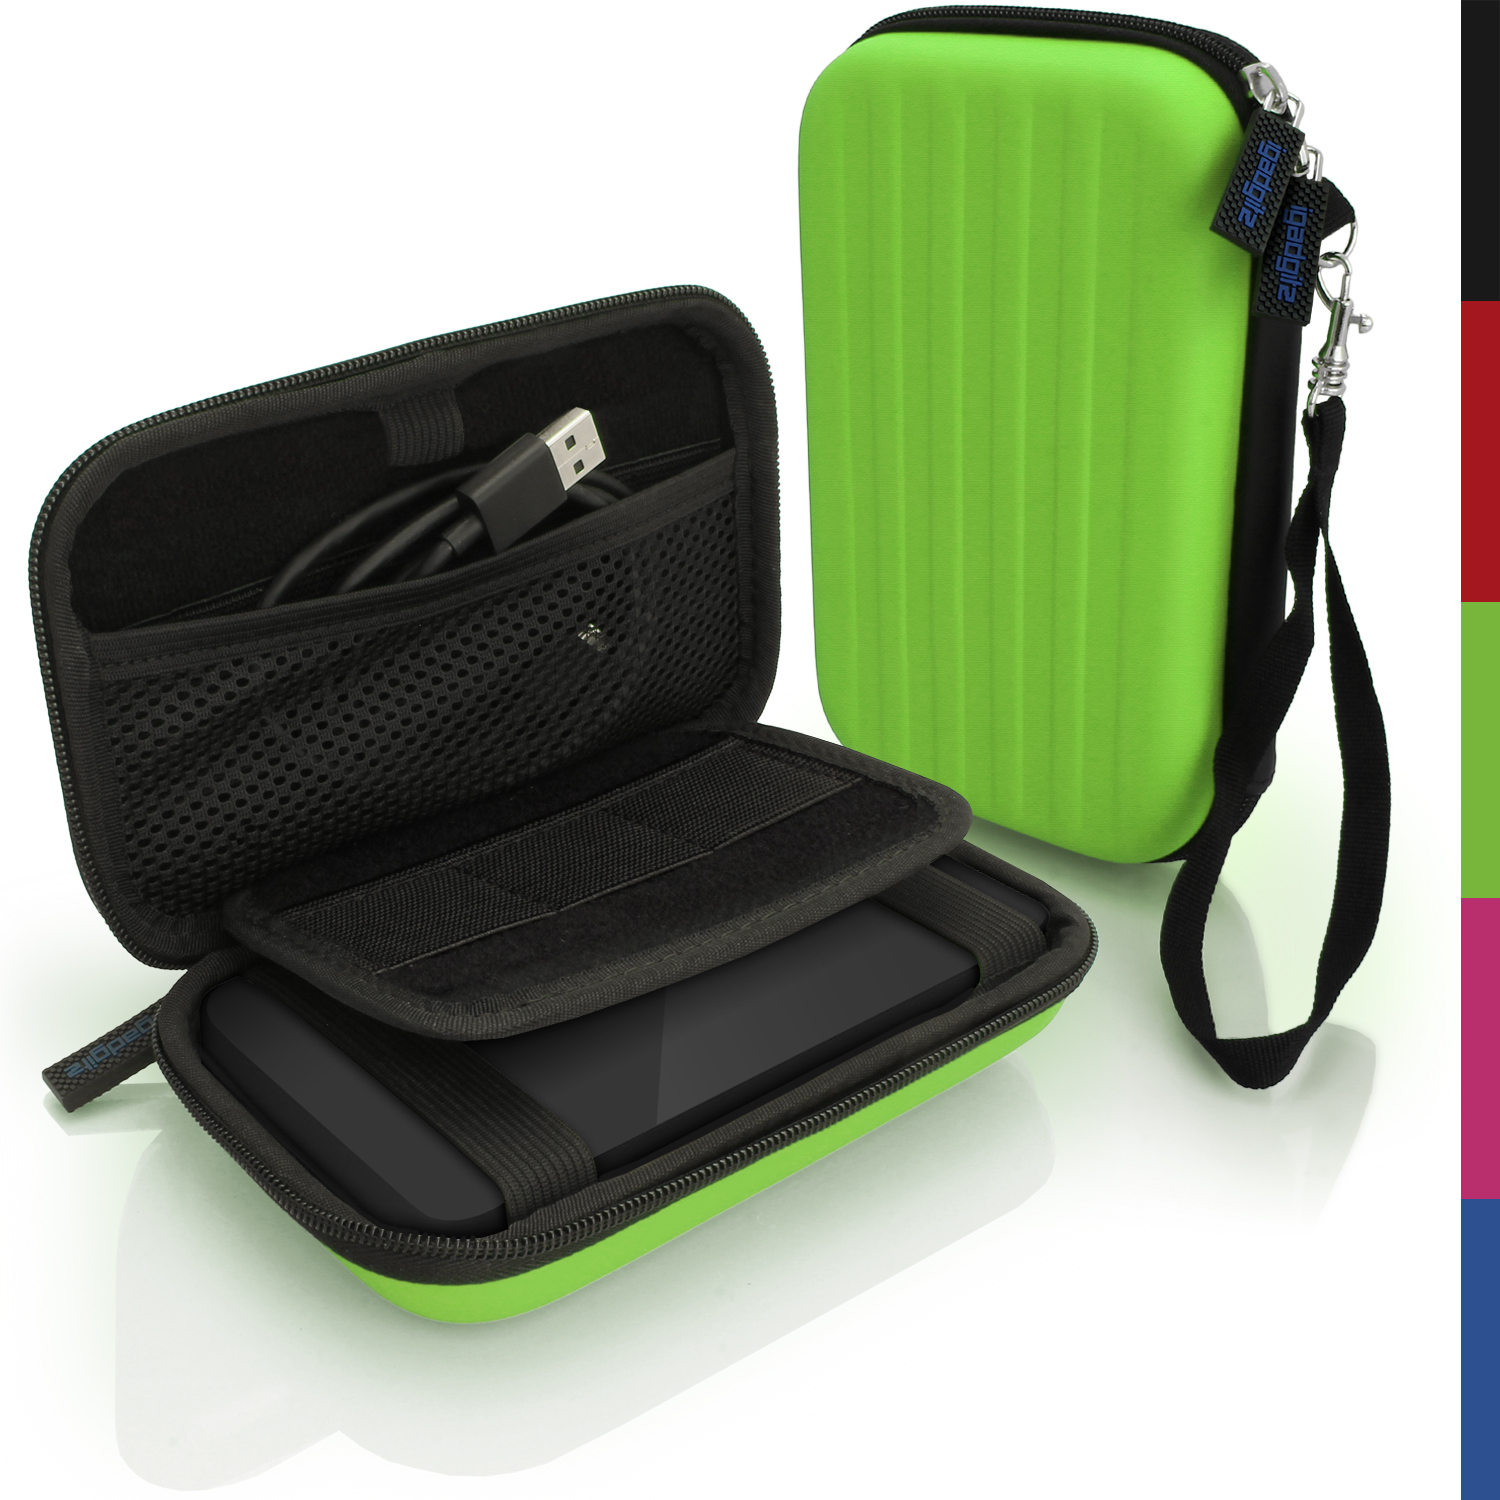 iGadgitz Green EVA Hard Travel Case Cover for Portable External Hard Drives (Internal Dimensions: 142 x 80.6 x 21.6mm)